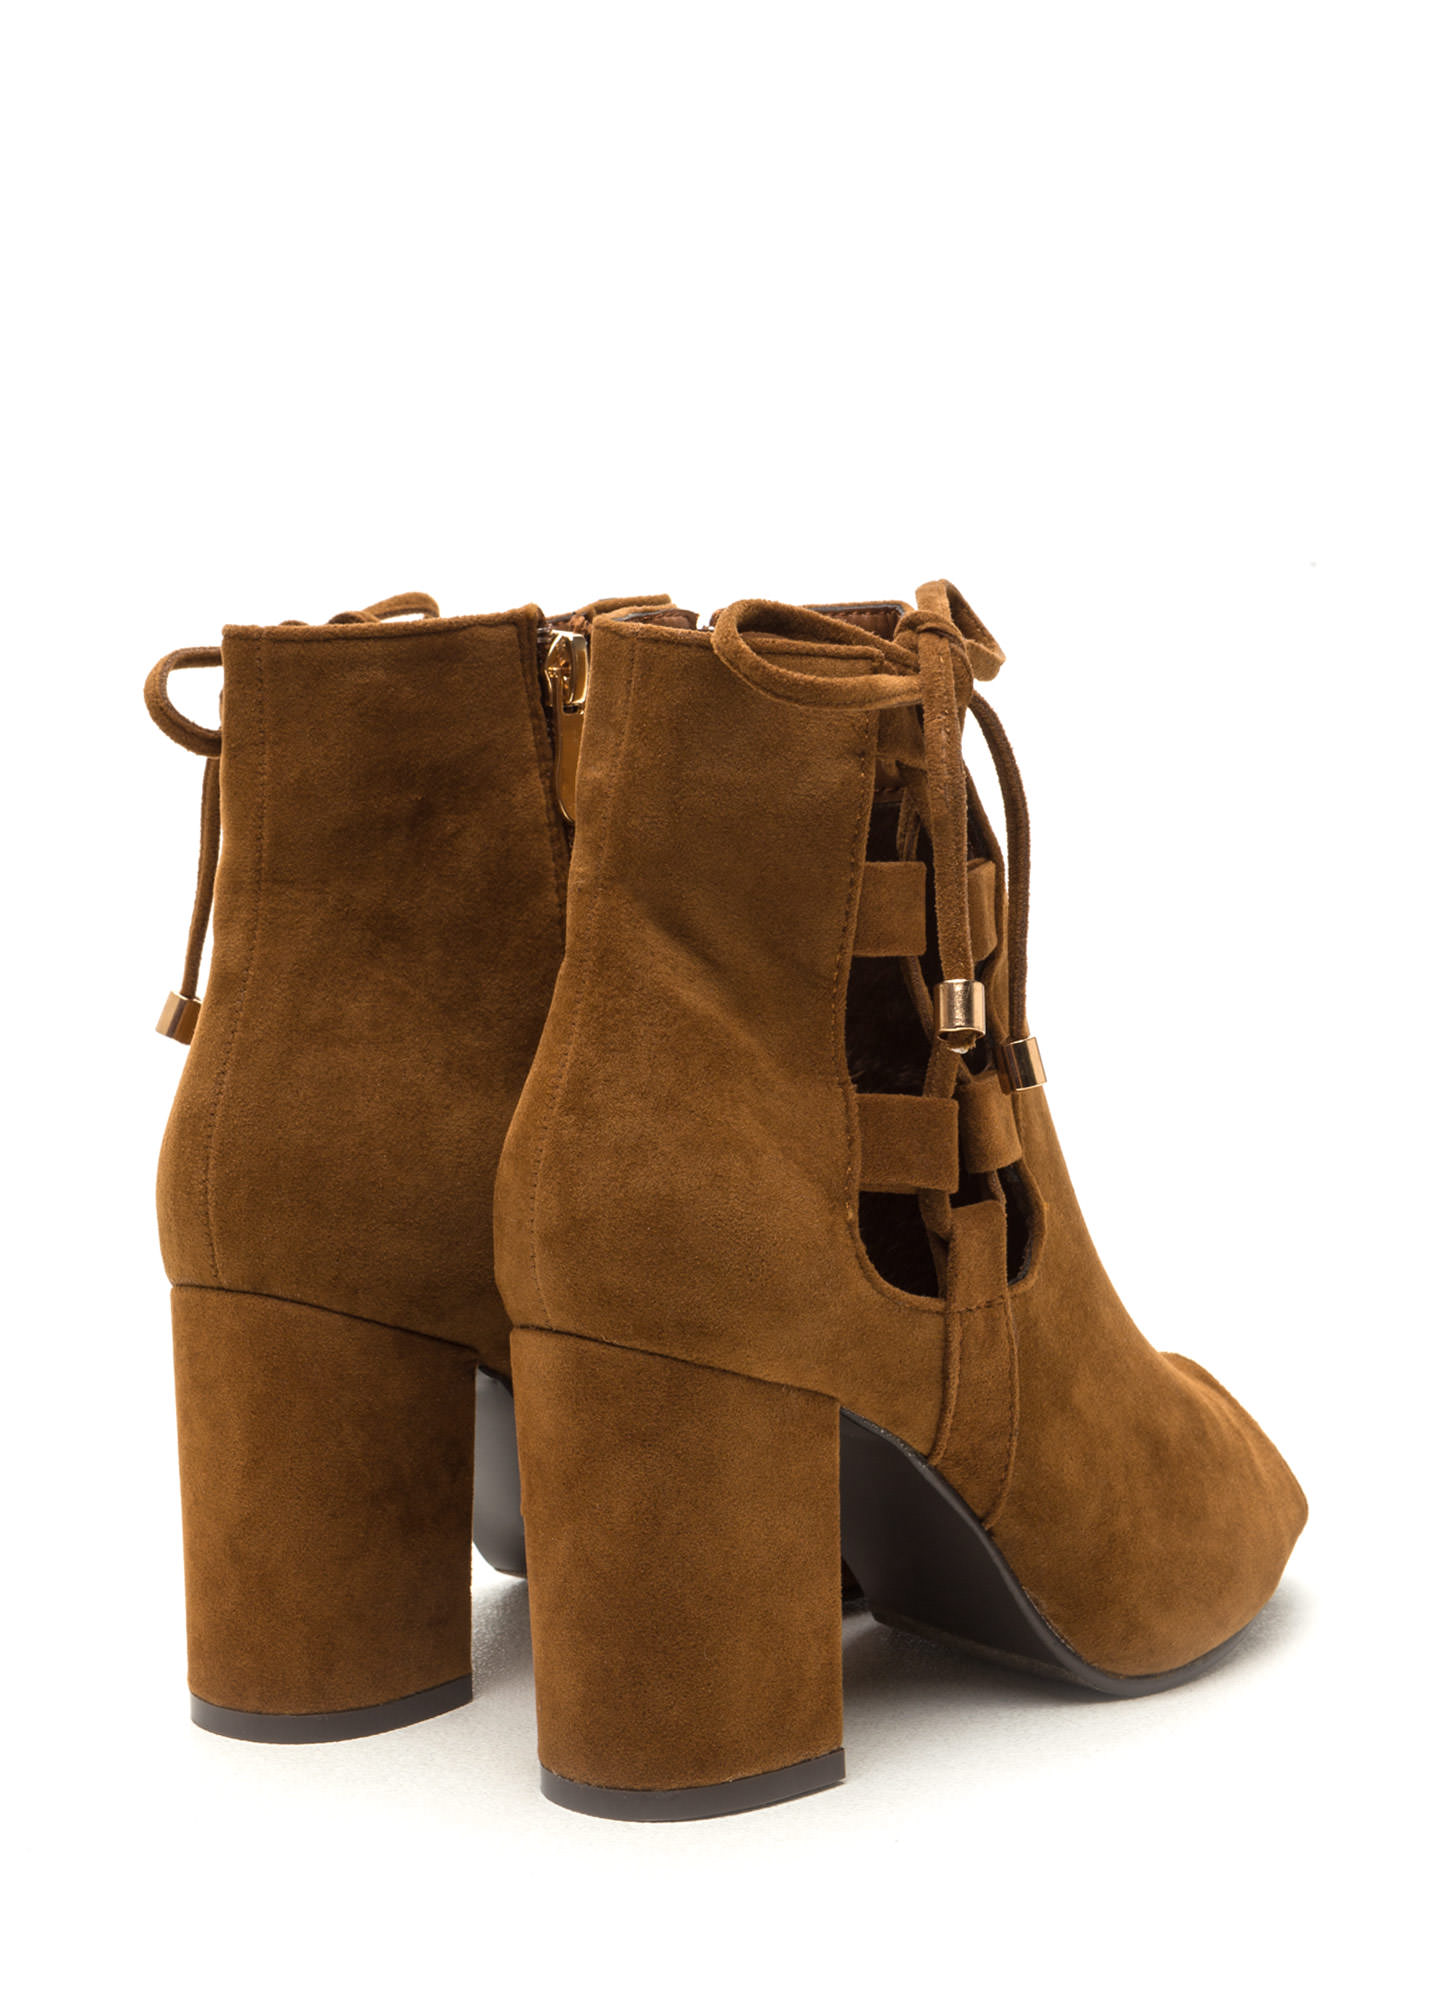 After Sunrise Lace-Up Chunky Booties COGNAC